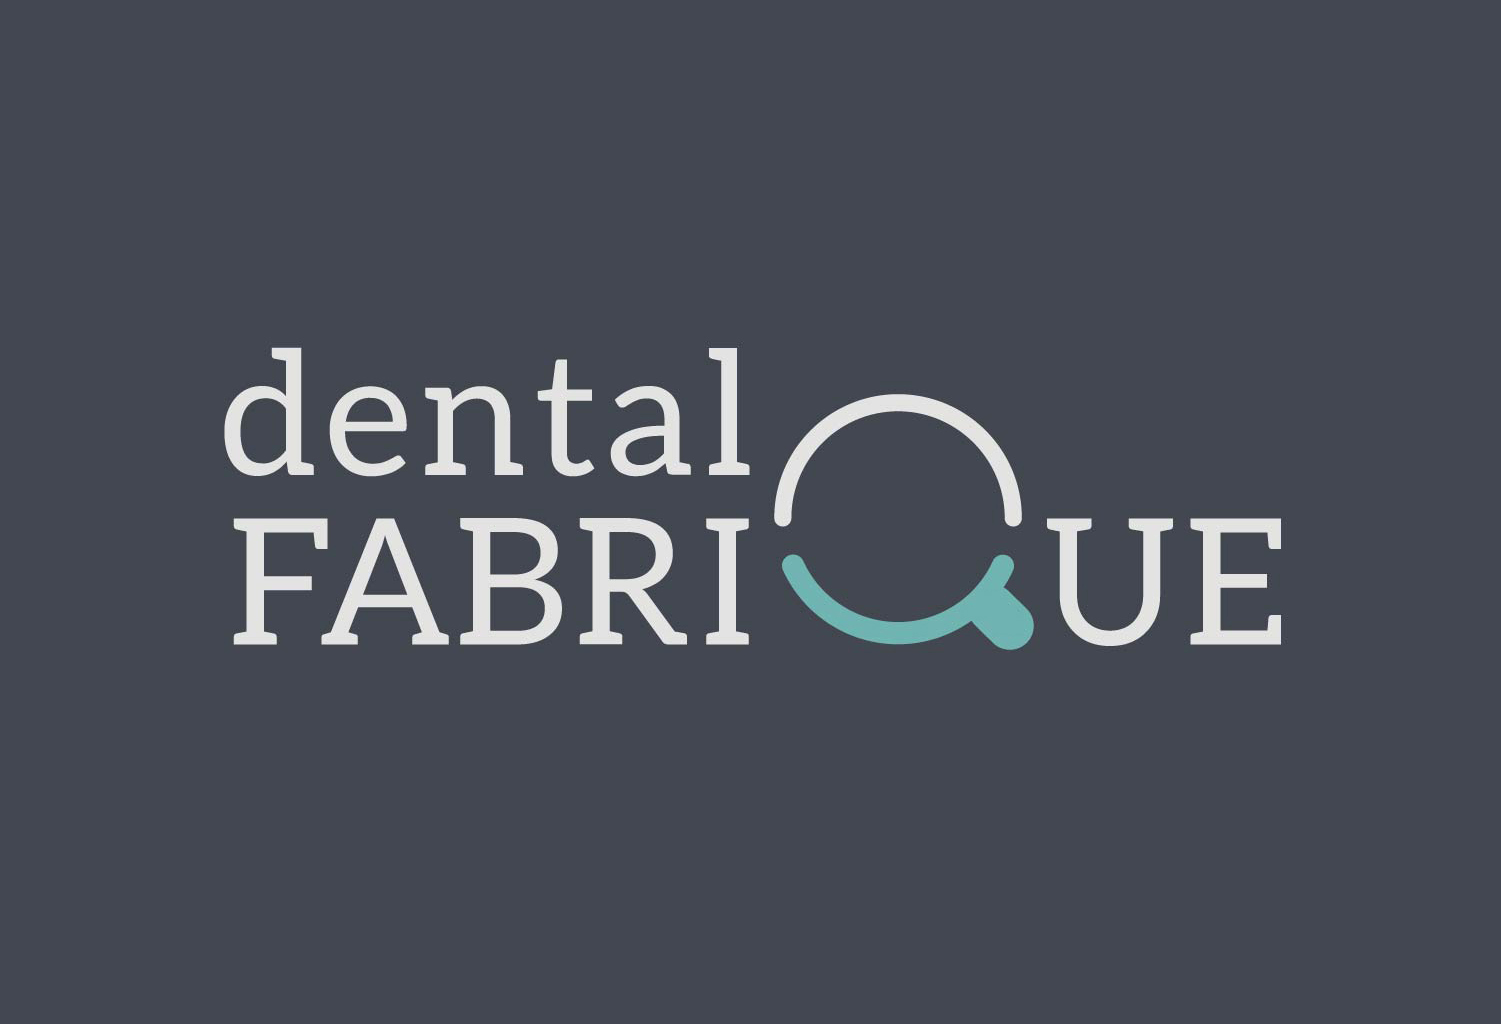 Dental Fabrique